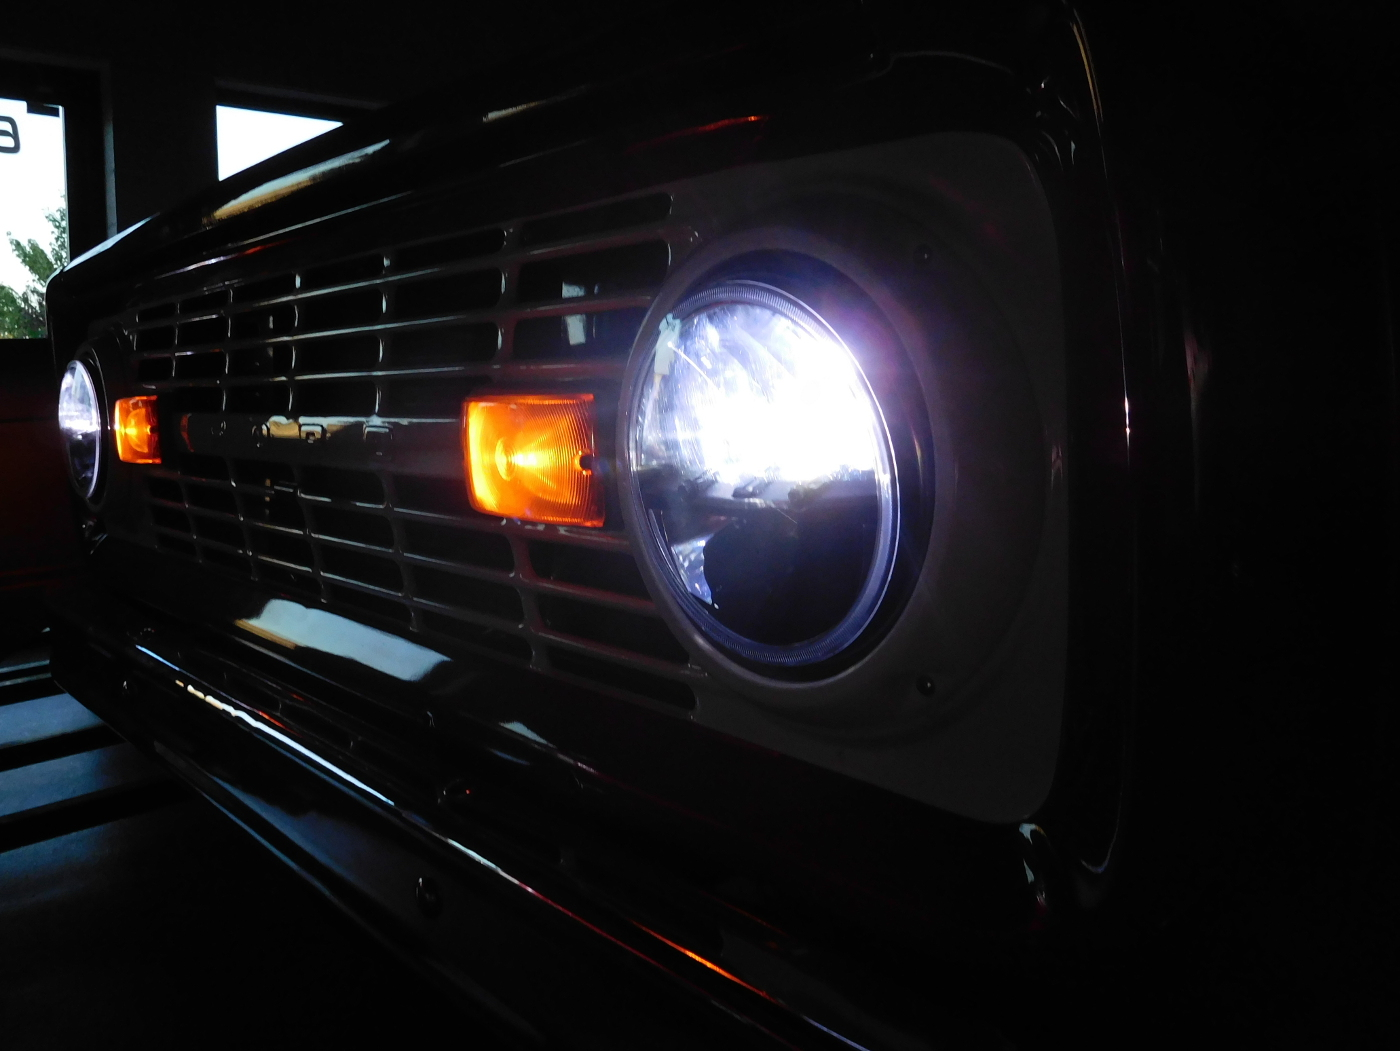 ford f150 bronco electron transport chain simple diagram 1966-1977 led projector headlights-broncograveyard.com